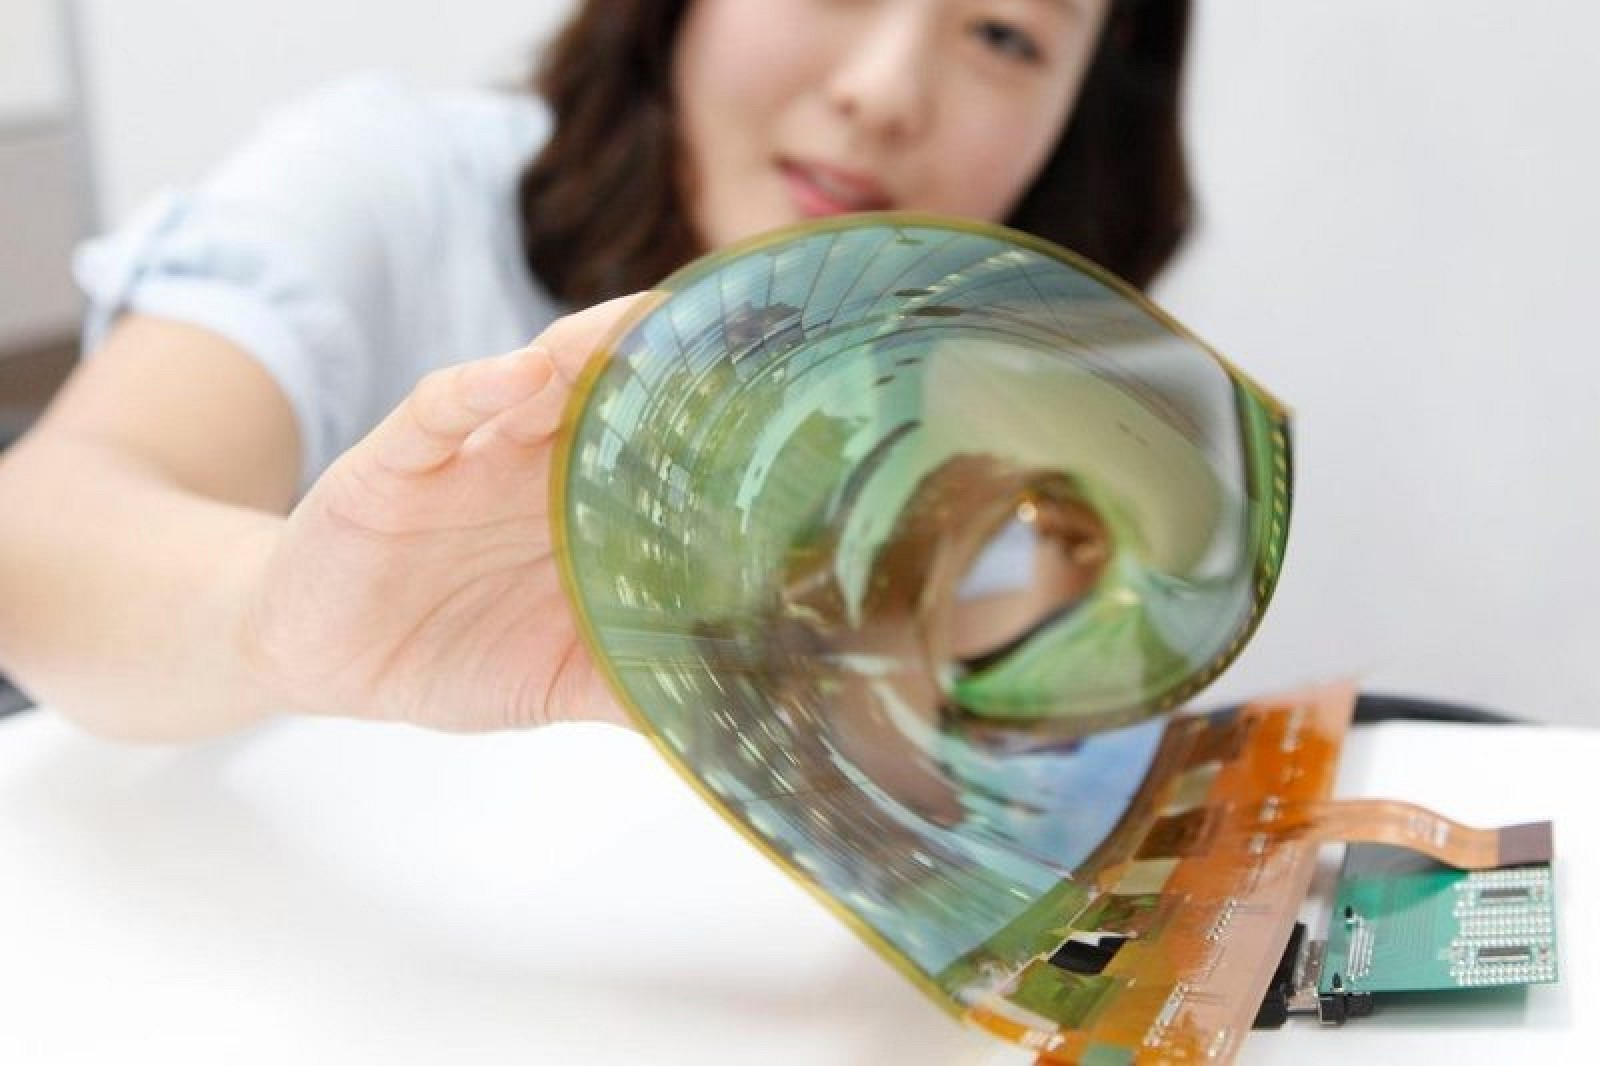 LG's foldable display technology